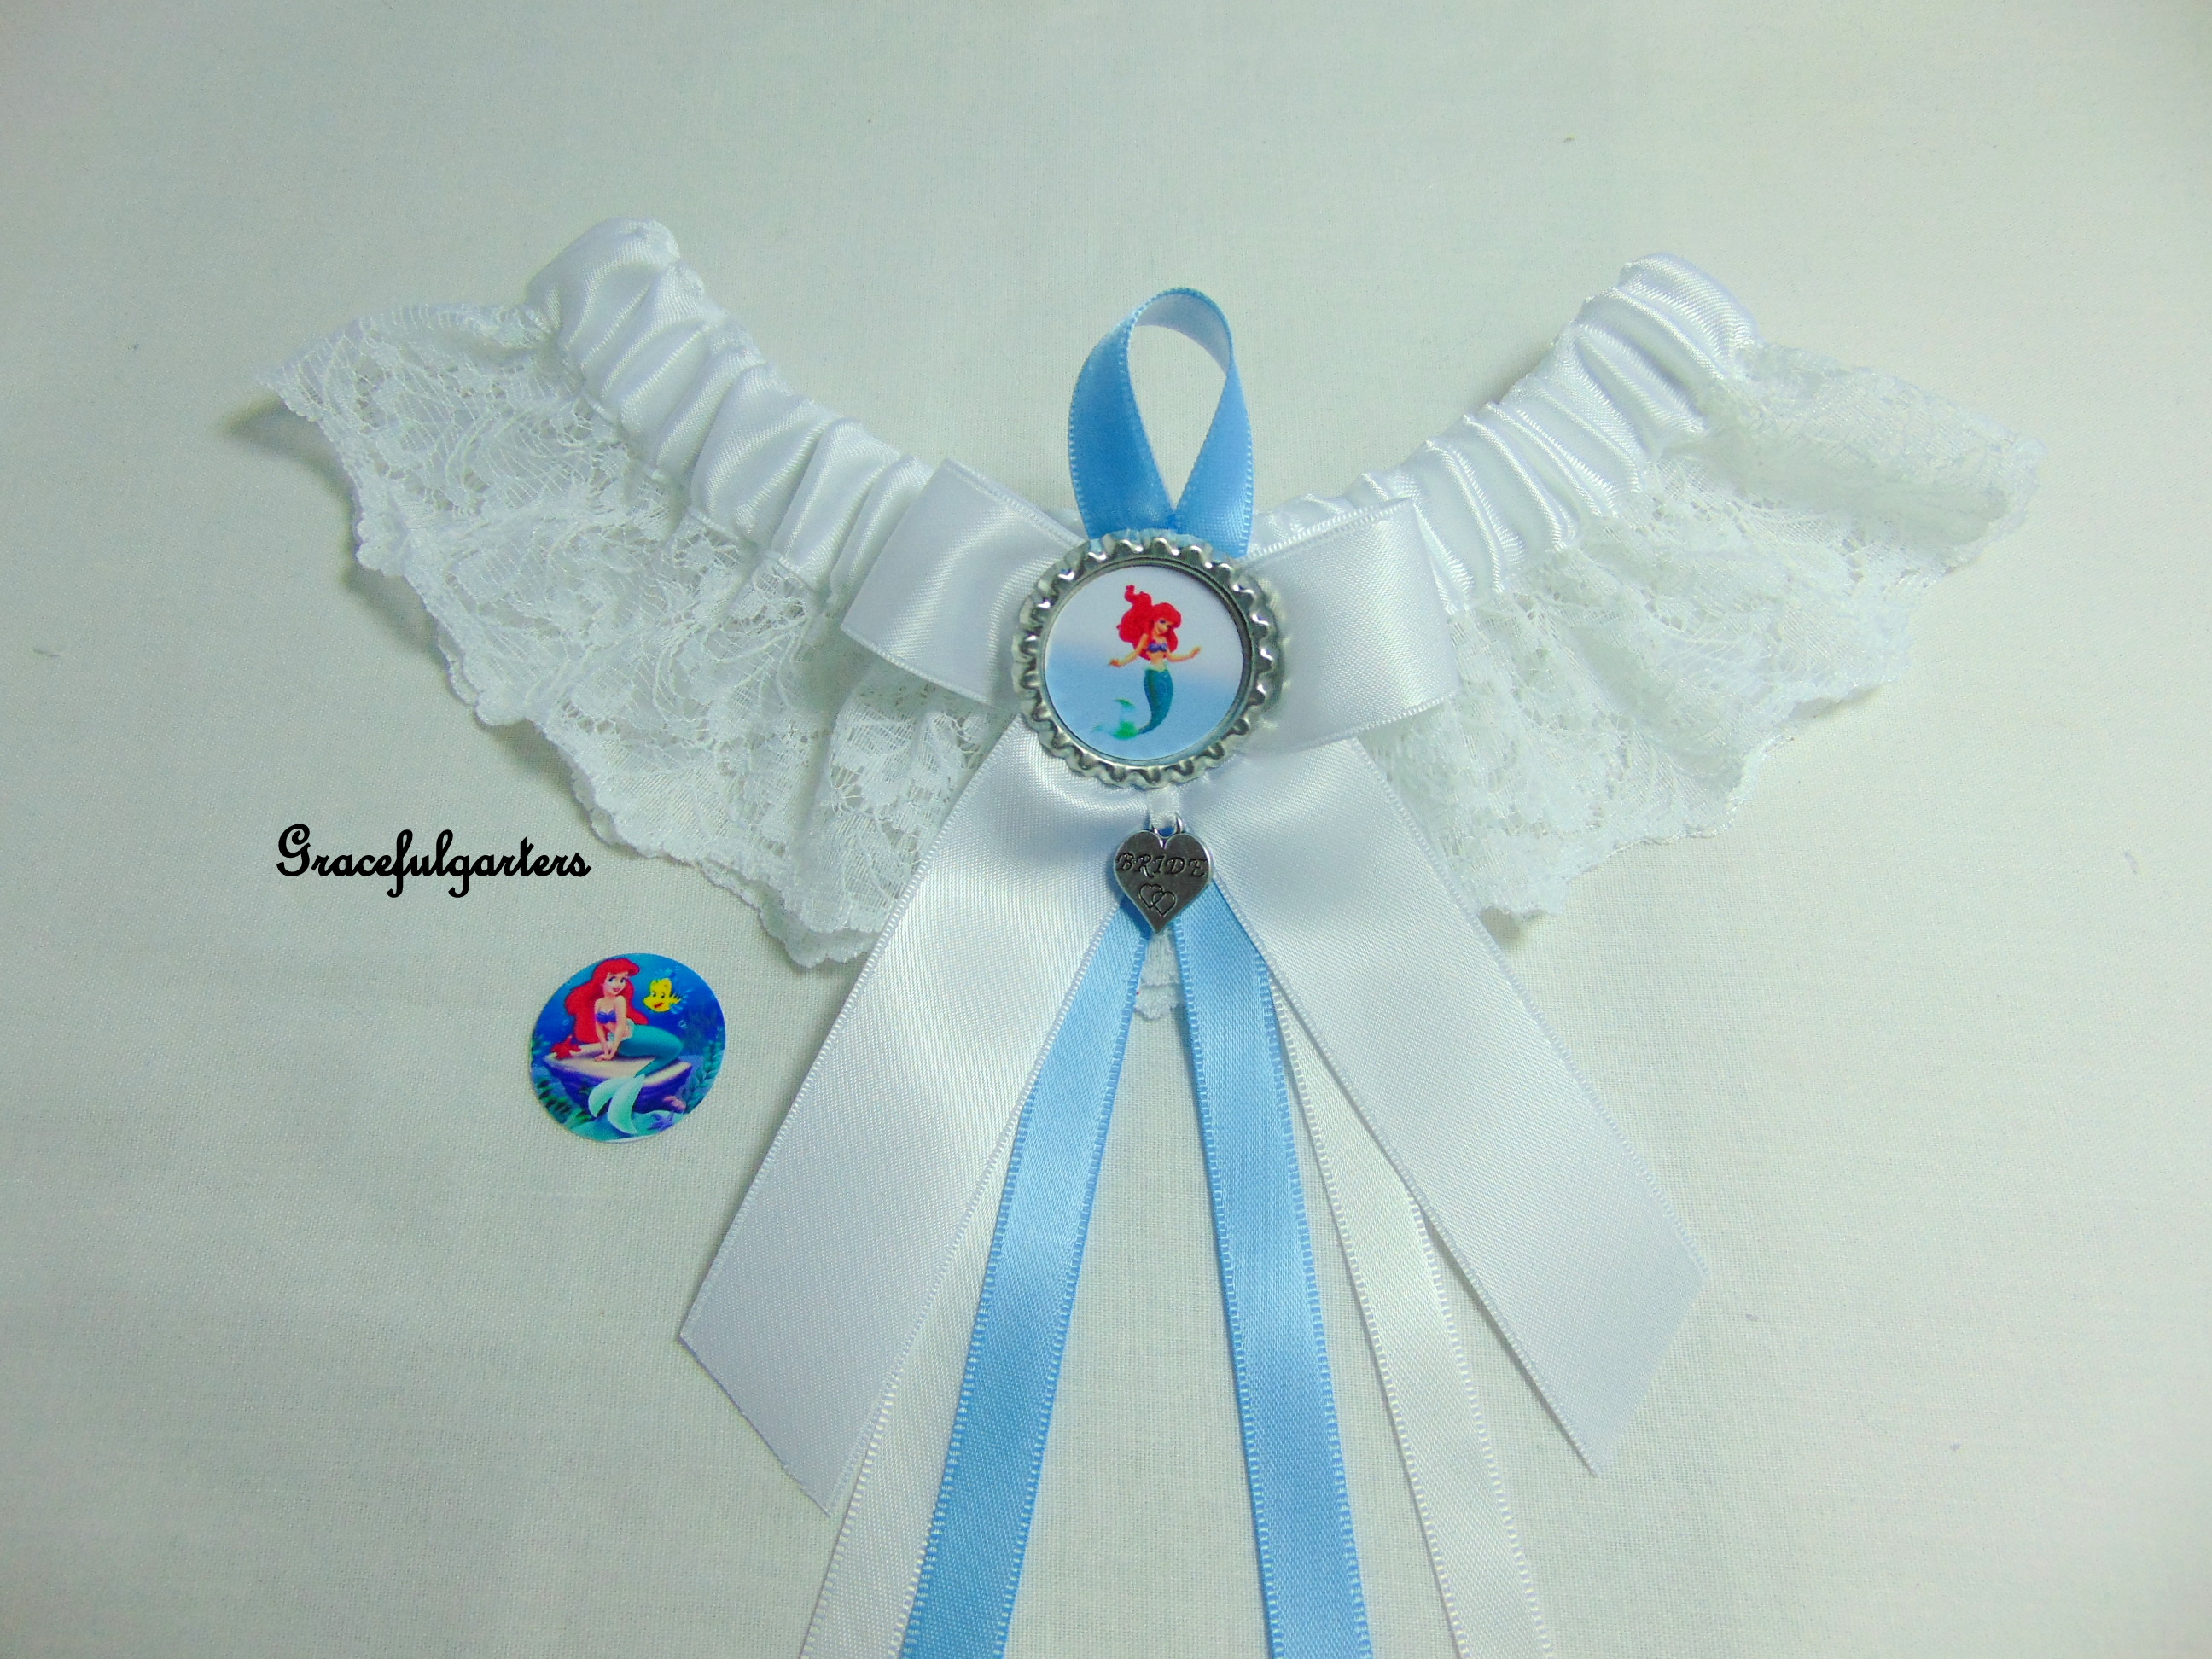 Disney Ariel The Little Mermaid Lace Bridal Wedding Garter